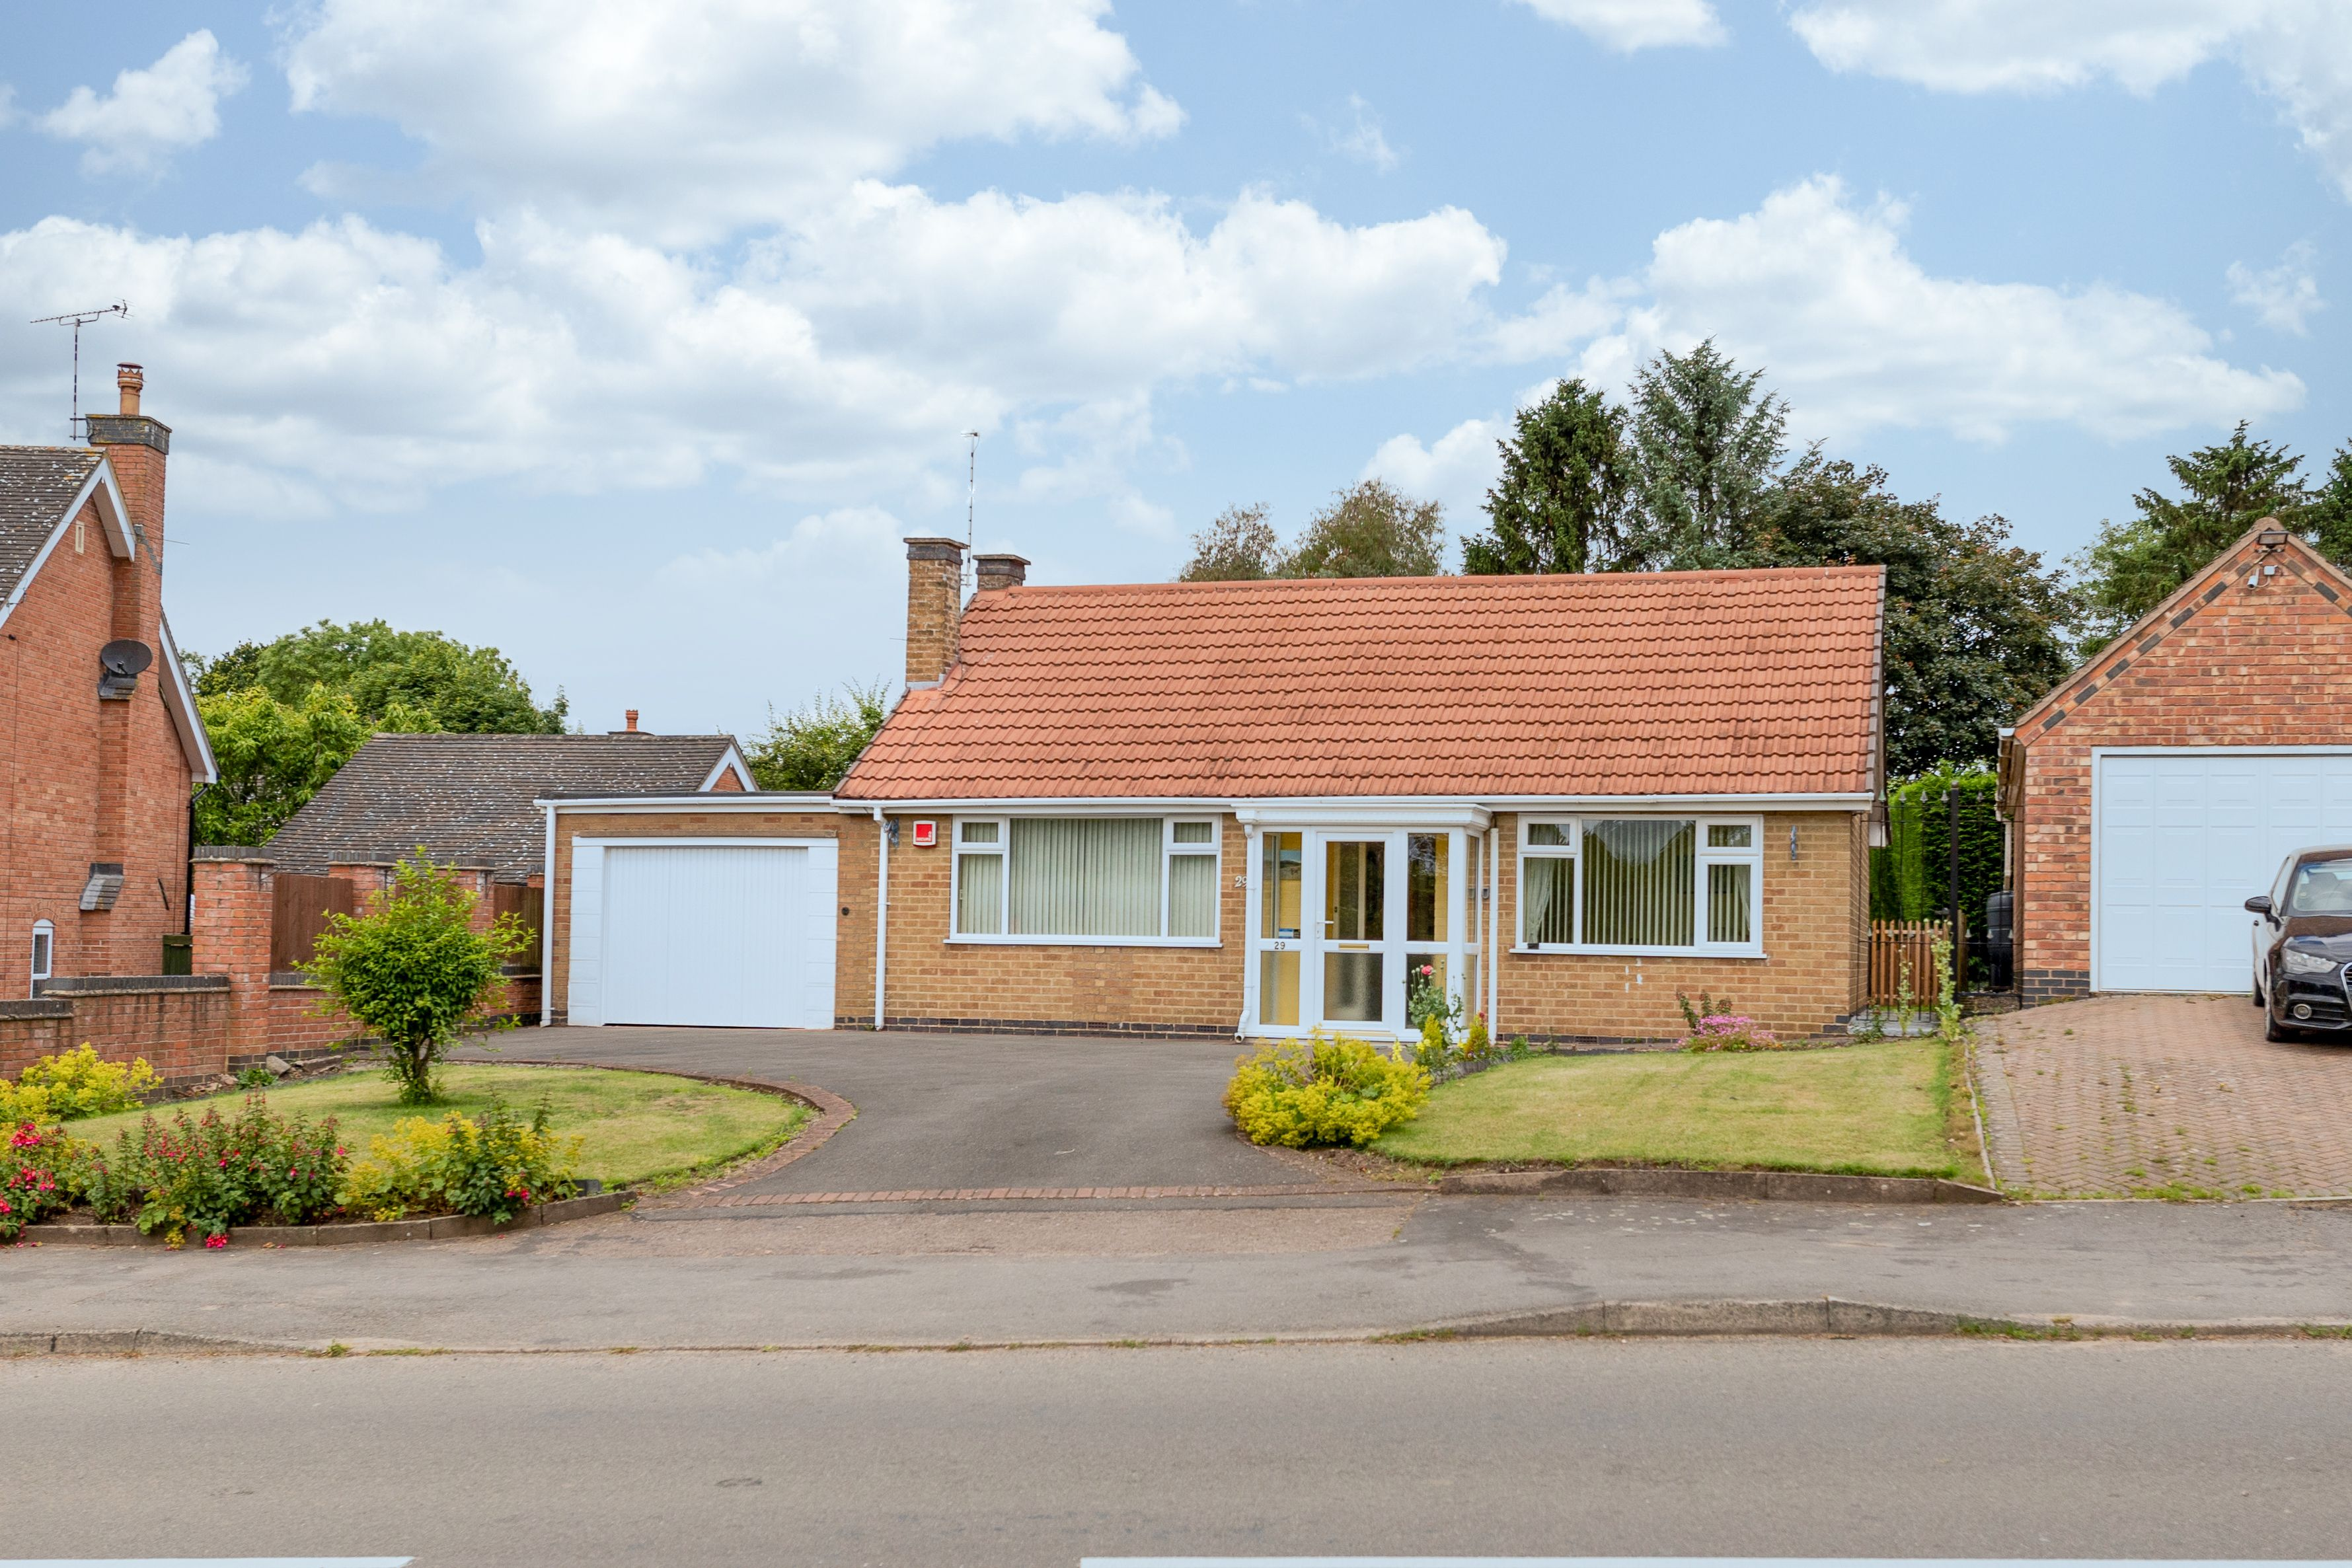 Available with no onward chain is this good-sized two/three bedroom bungalow located in the popular location of Peckleton. Briefly comprising a porch, hallway, lounge, kitchen, sunroom, two bedrooms and bathroom with separate WC.